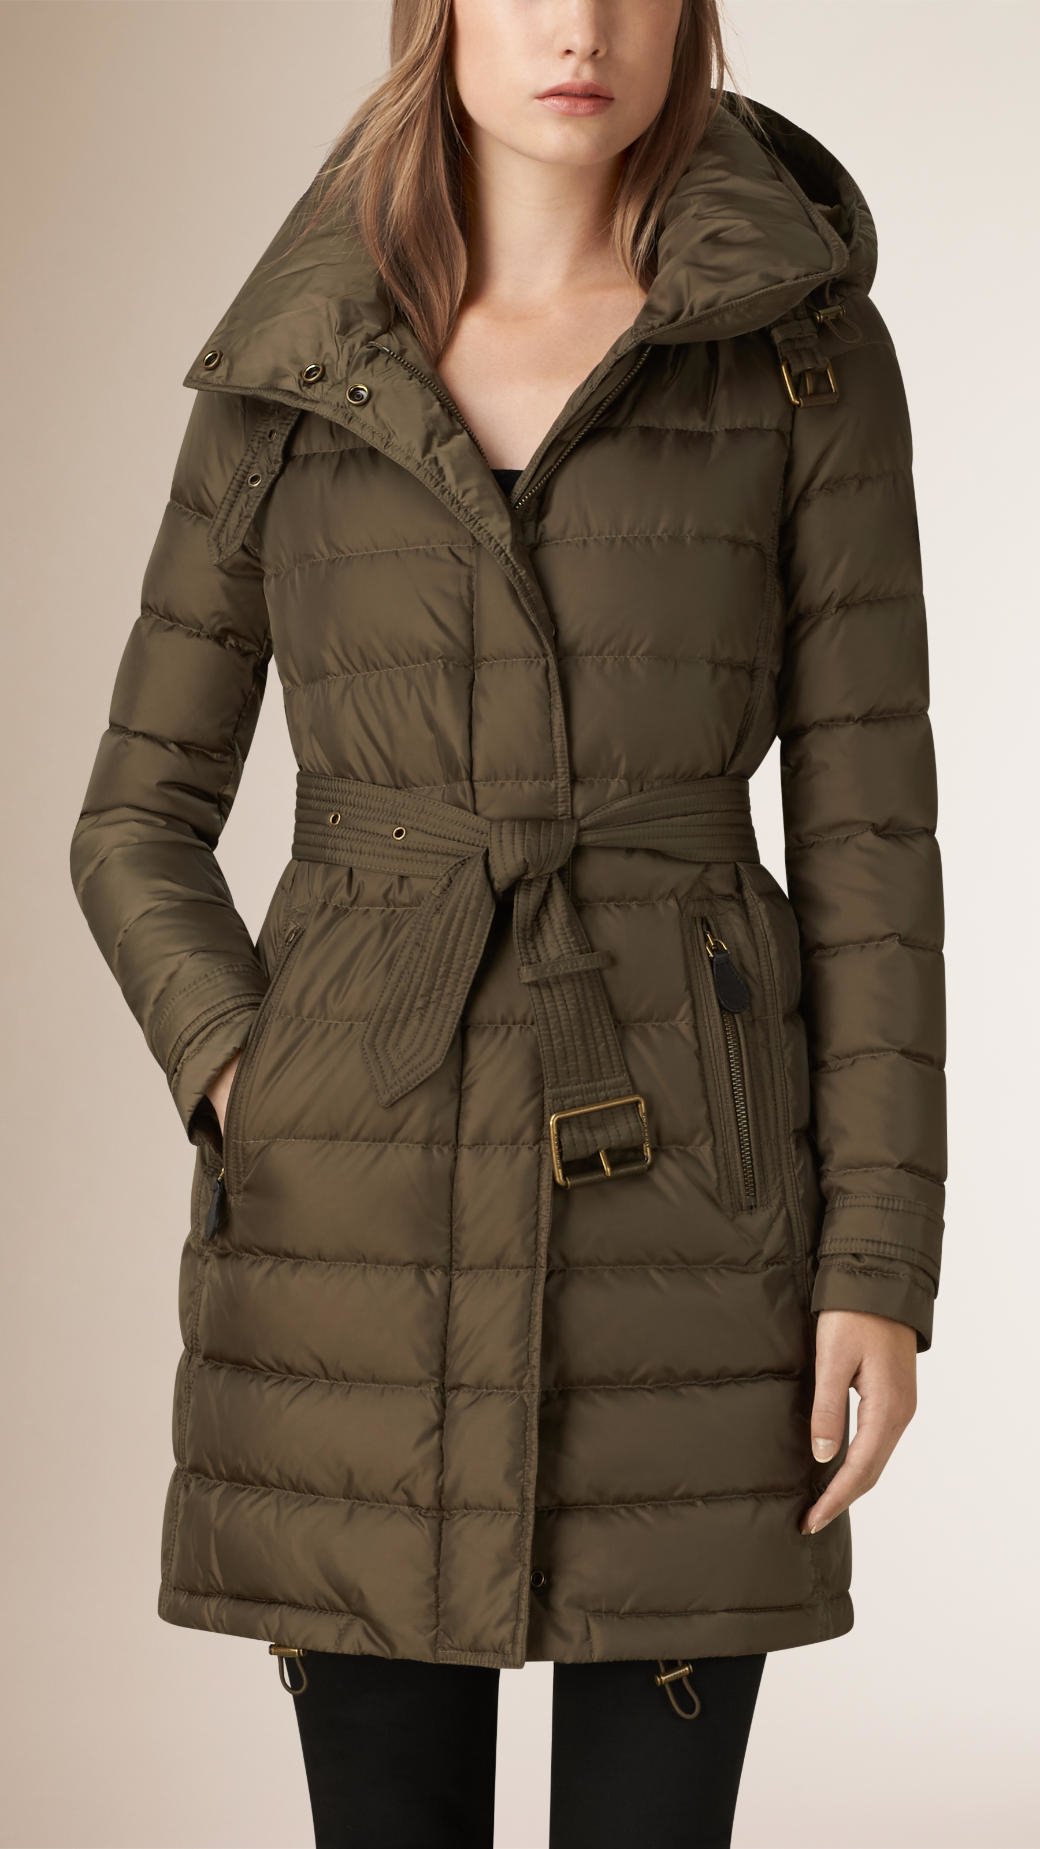 Burberry Down-filled Puffer Coat in Gray | Lyst